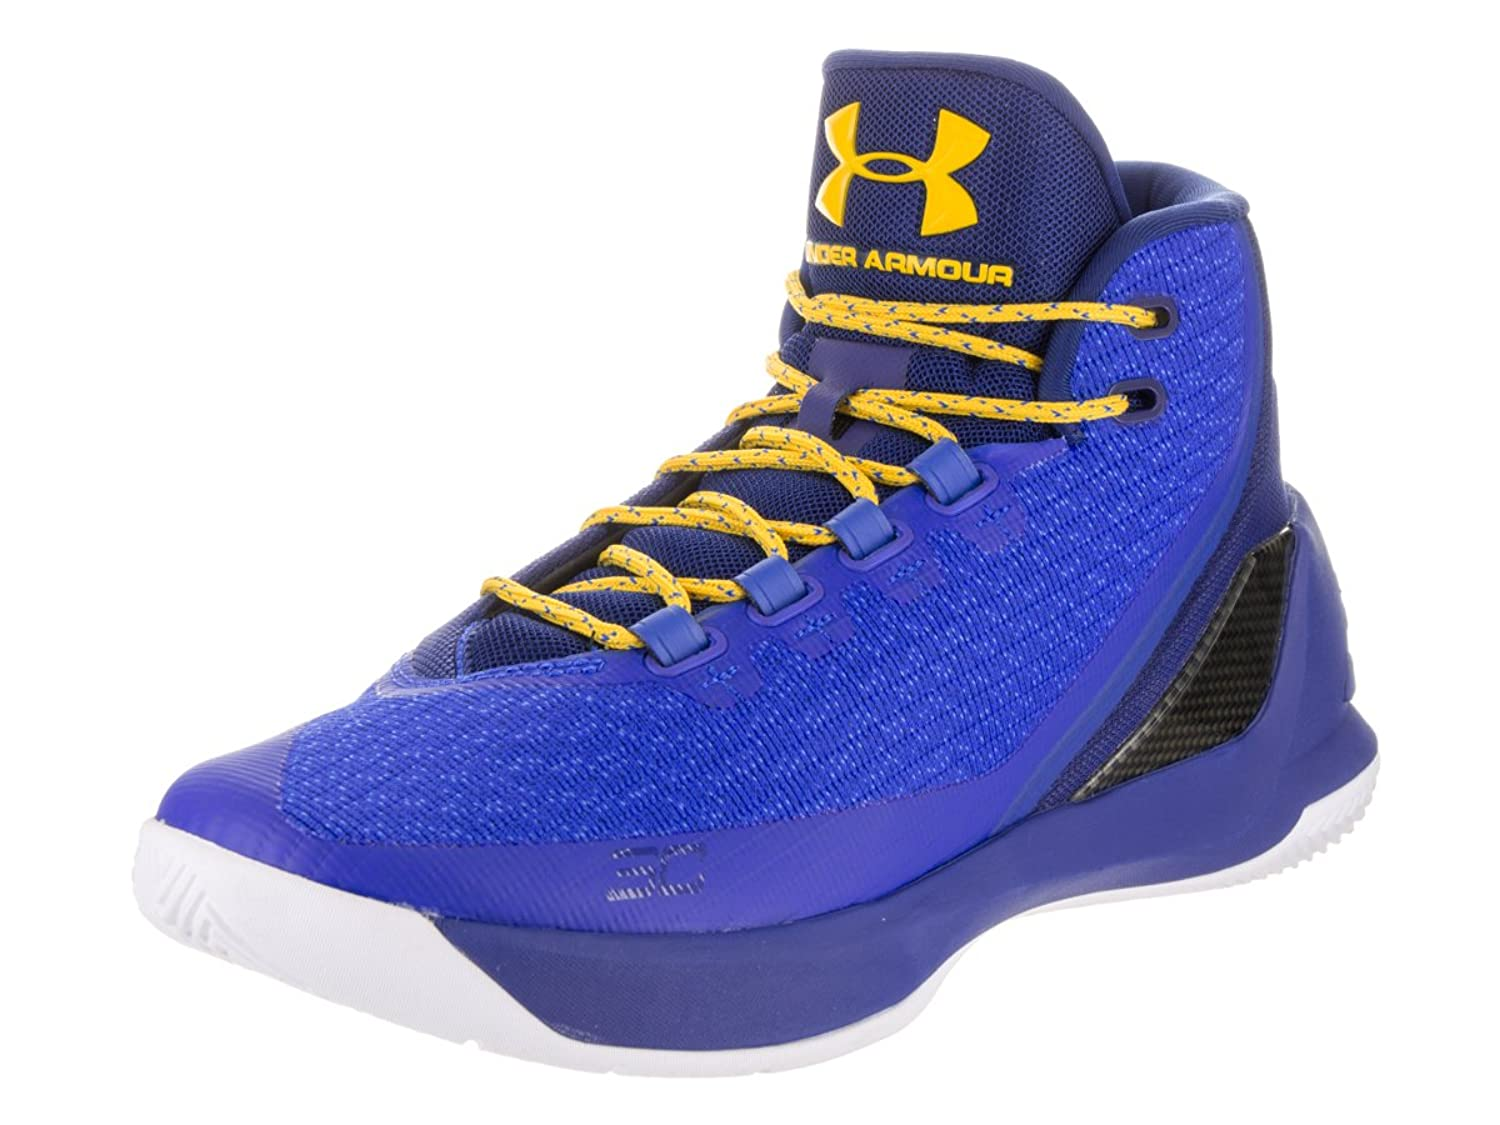 stephen curry shoes 5 grey kids cheap   OFF31% The Largest Catalog ... bd36699d82b